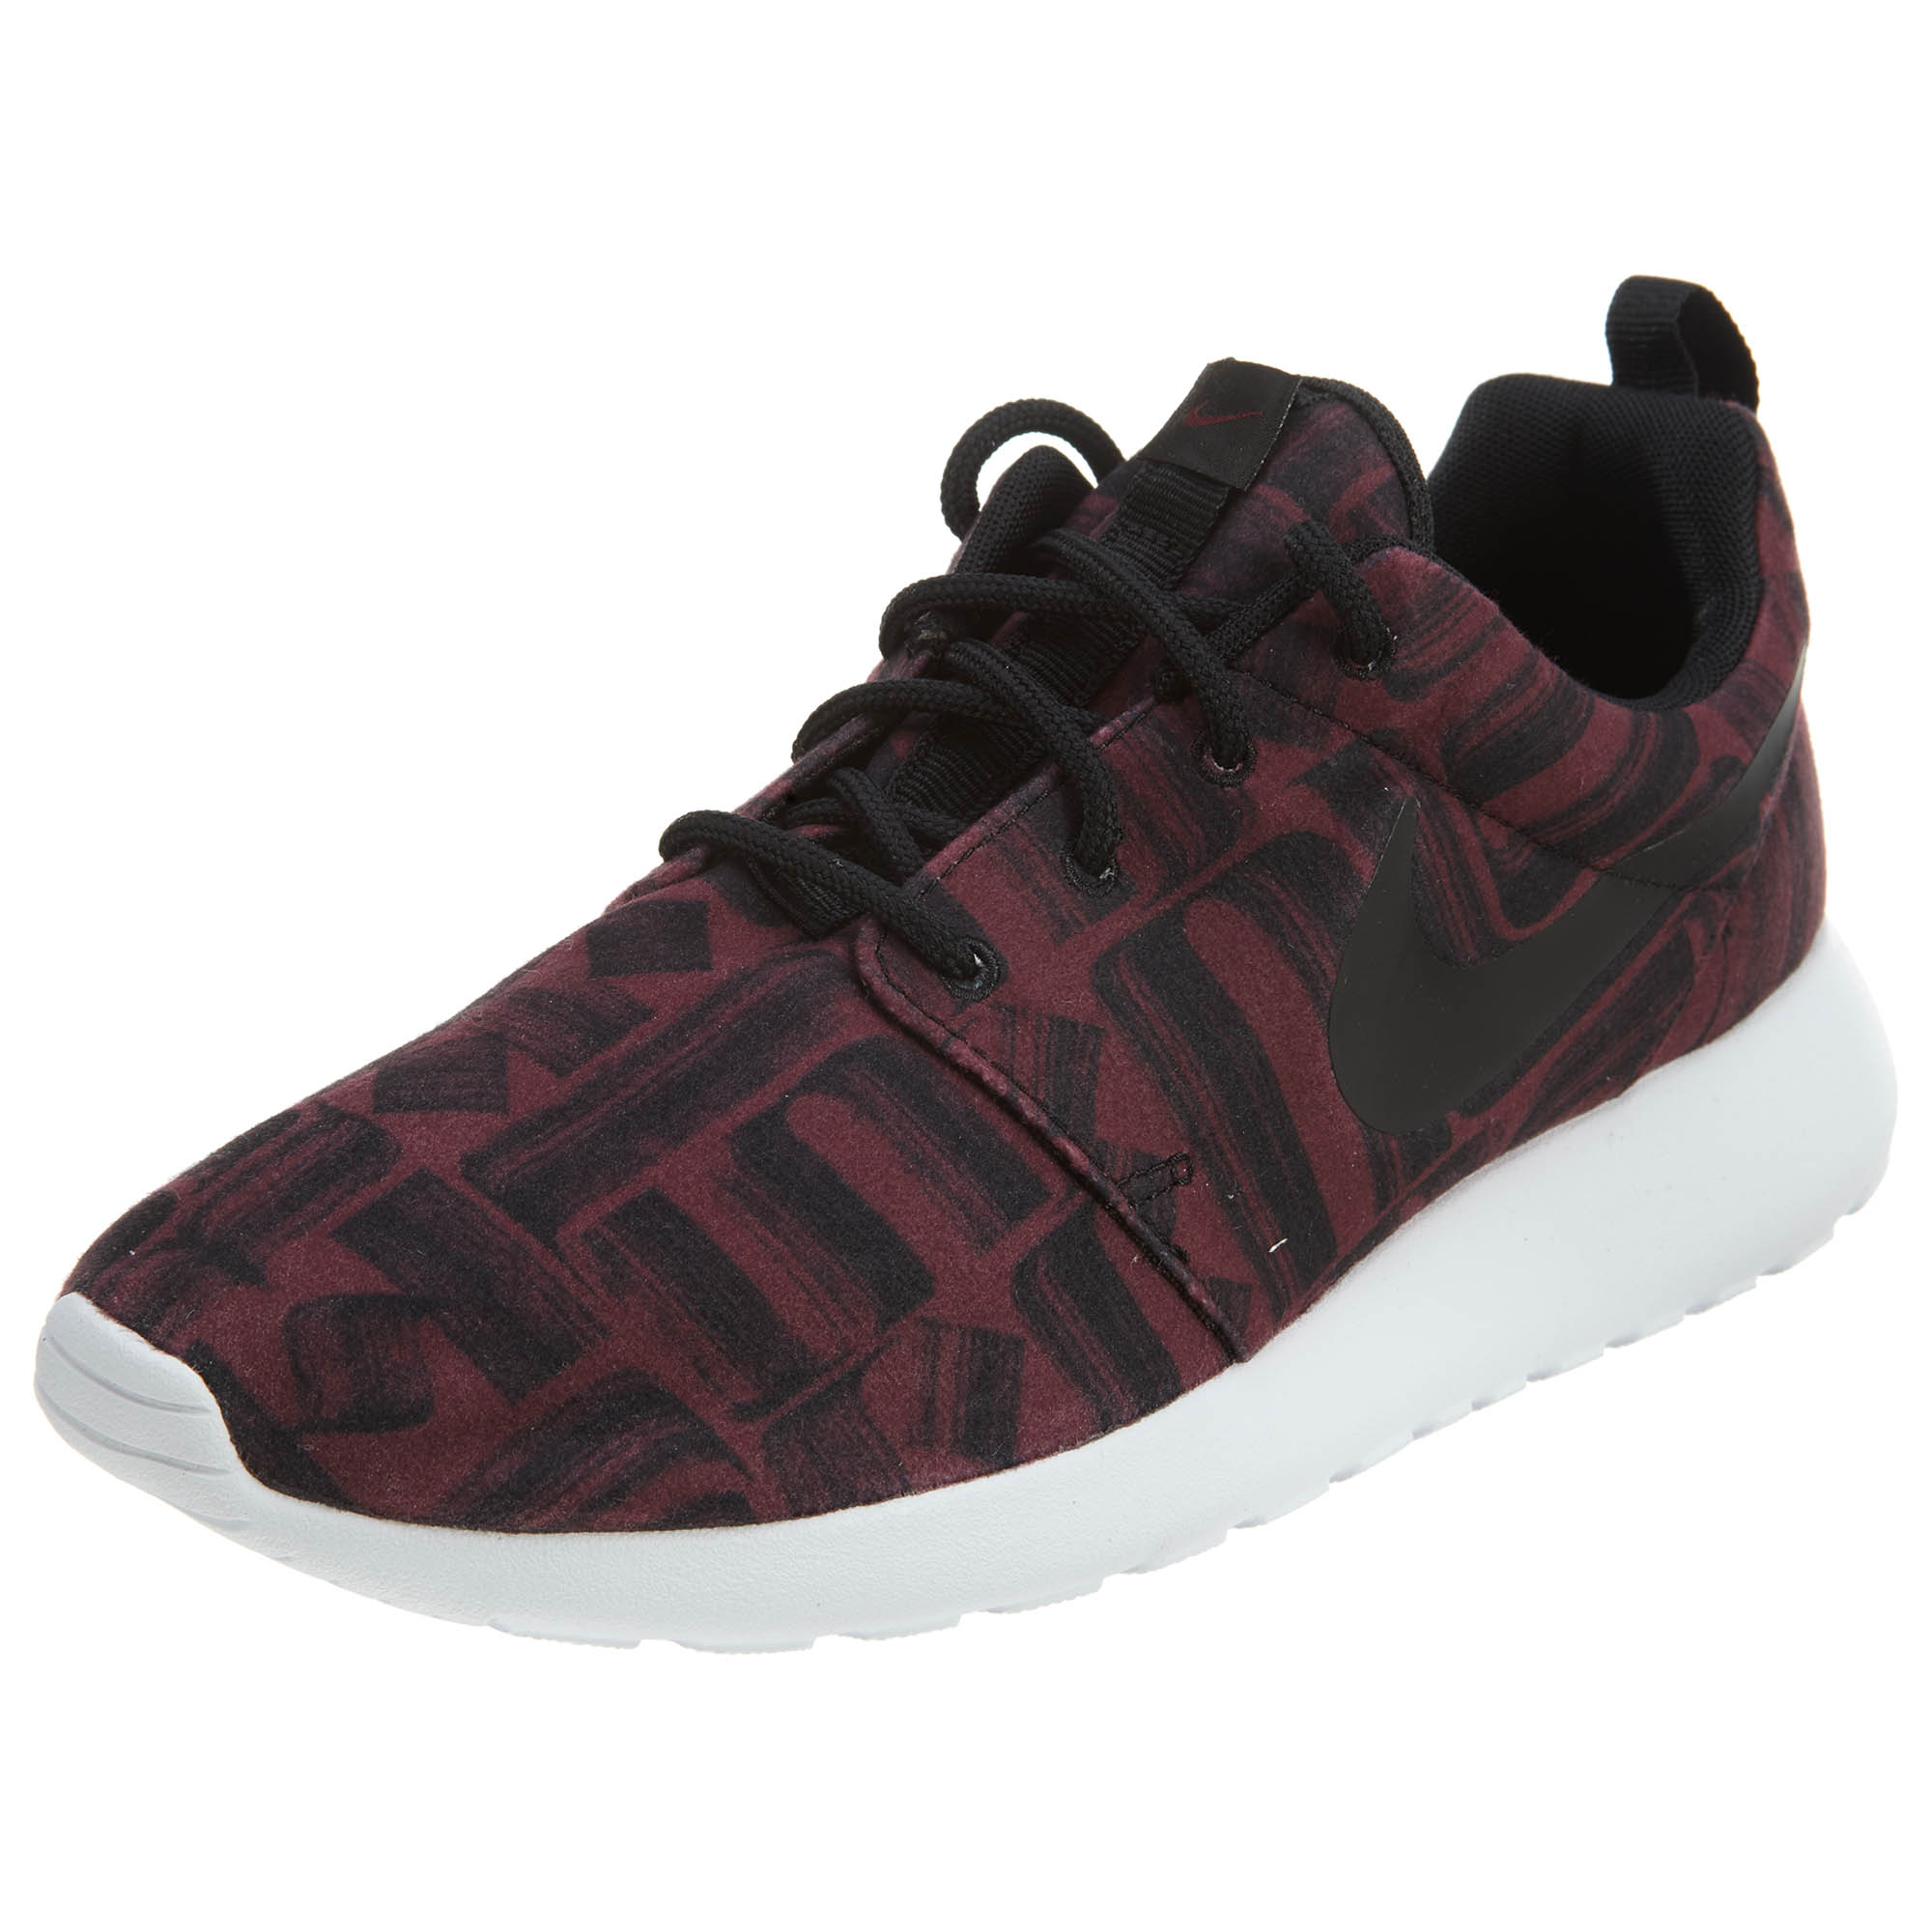 301219024cde Details about Nike Womens Roshe One Print Sneakers 844958-601